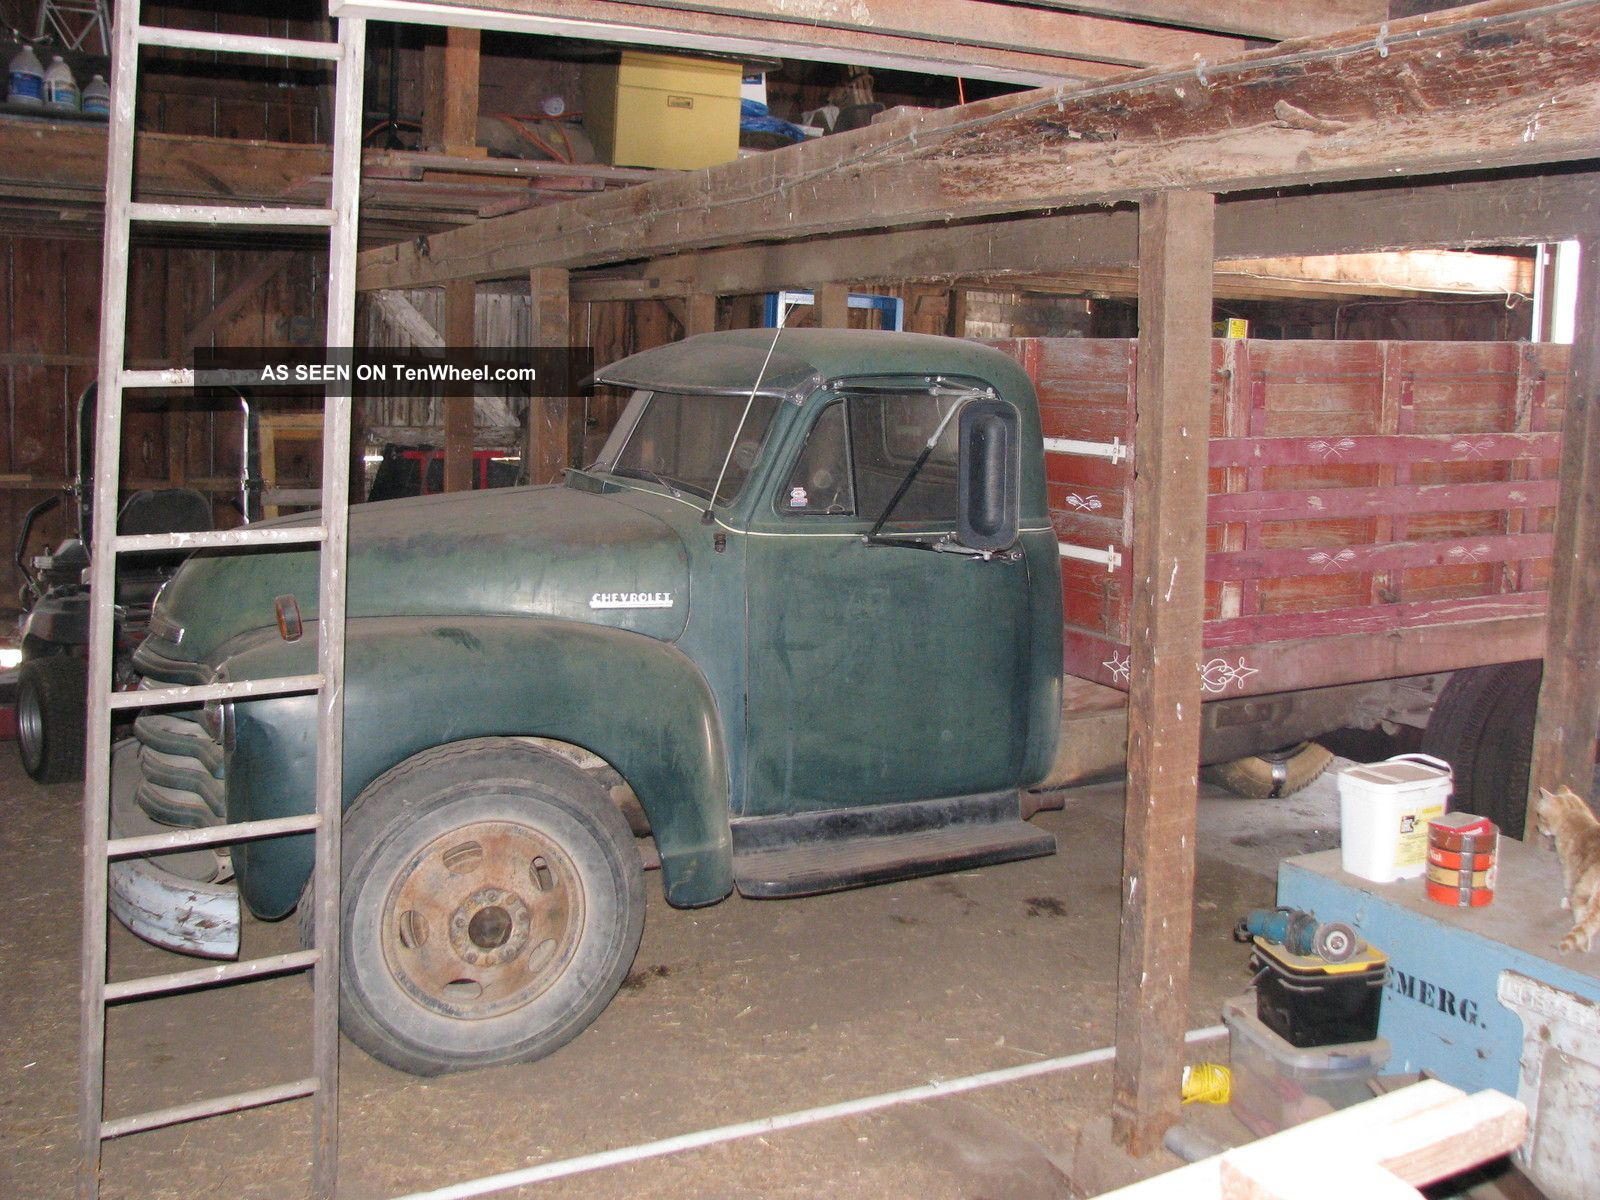 1952 Chevrolet 6400 Dump Truck With Grain Tight Grain Box And Hydraulic Hoist Other Pickups photo